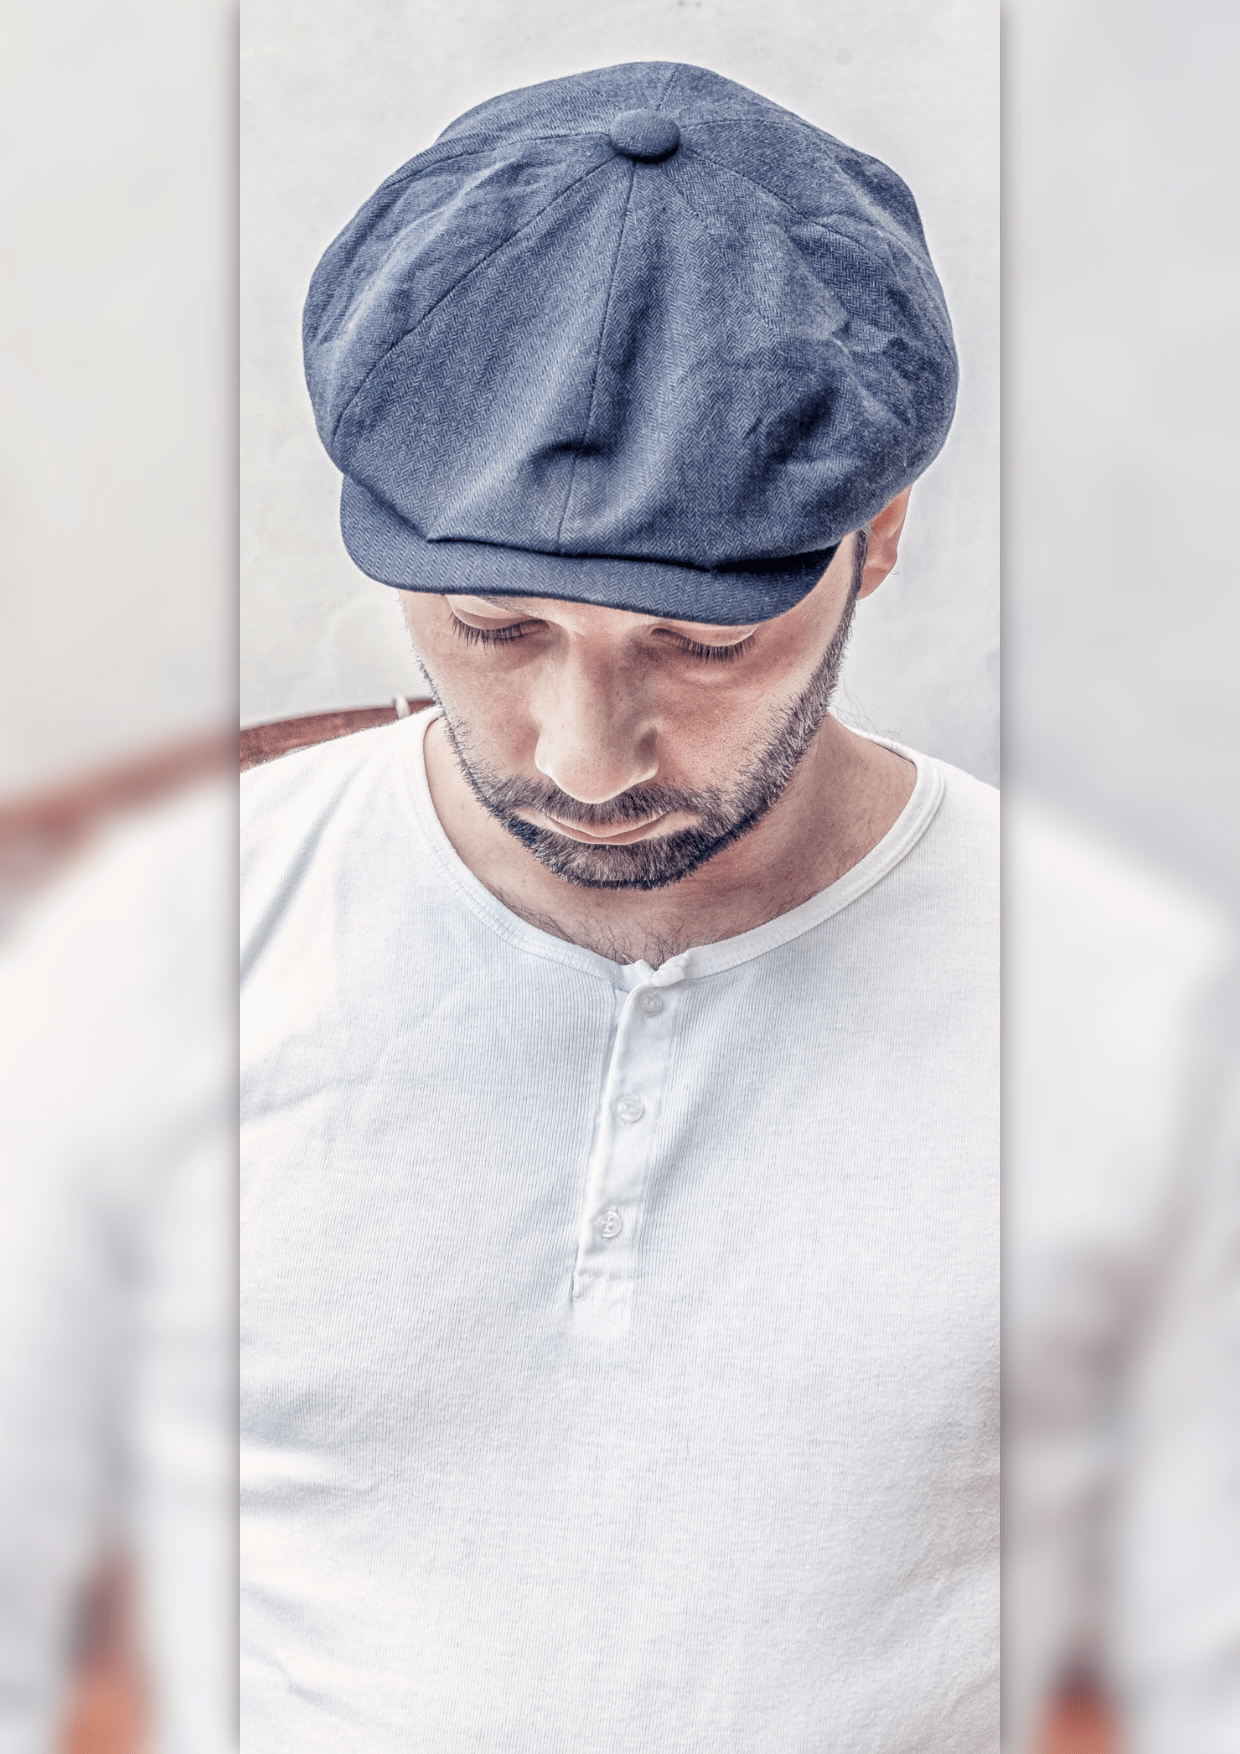 Clothing,                Cap,                Fashion,                Accessory,                Hairstyle,                Hat,                Mockup,                Frame,                Image,                Avatar,                White,                 Free Image